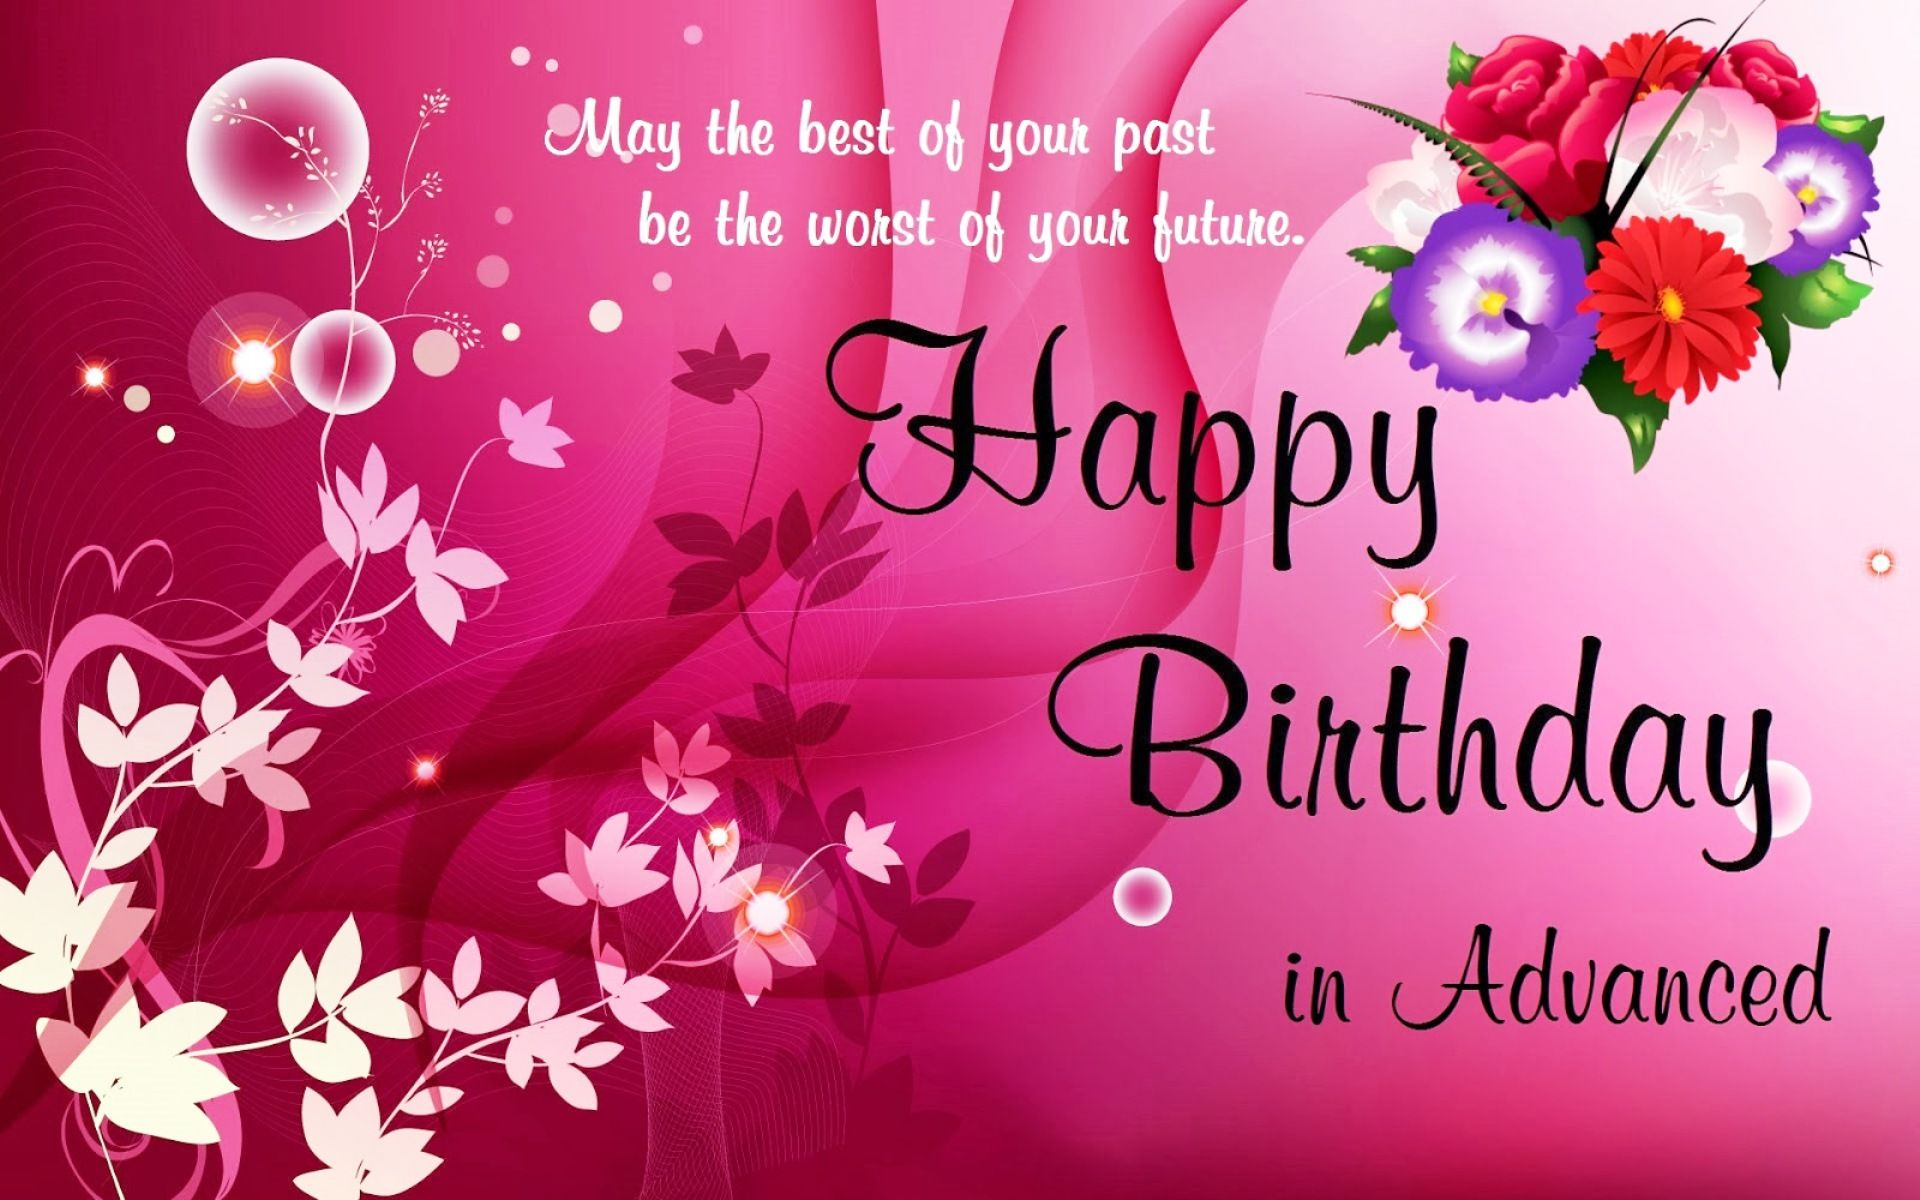 Happy Birthday Wallpaper Hd Page 2 Of 3 Wallpaper Wiki Happy Birthday Wishes Cards Advance Birthday Wishes Birthday Wishes And Images